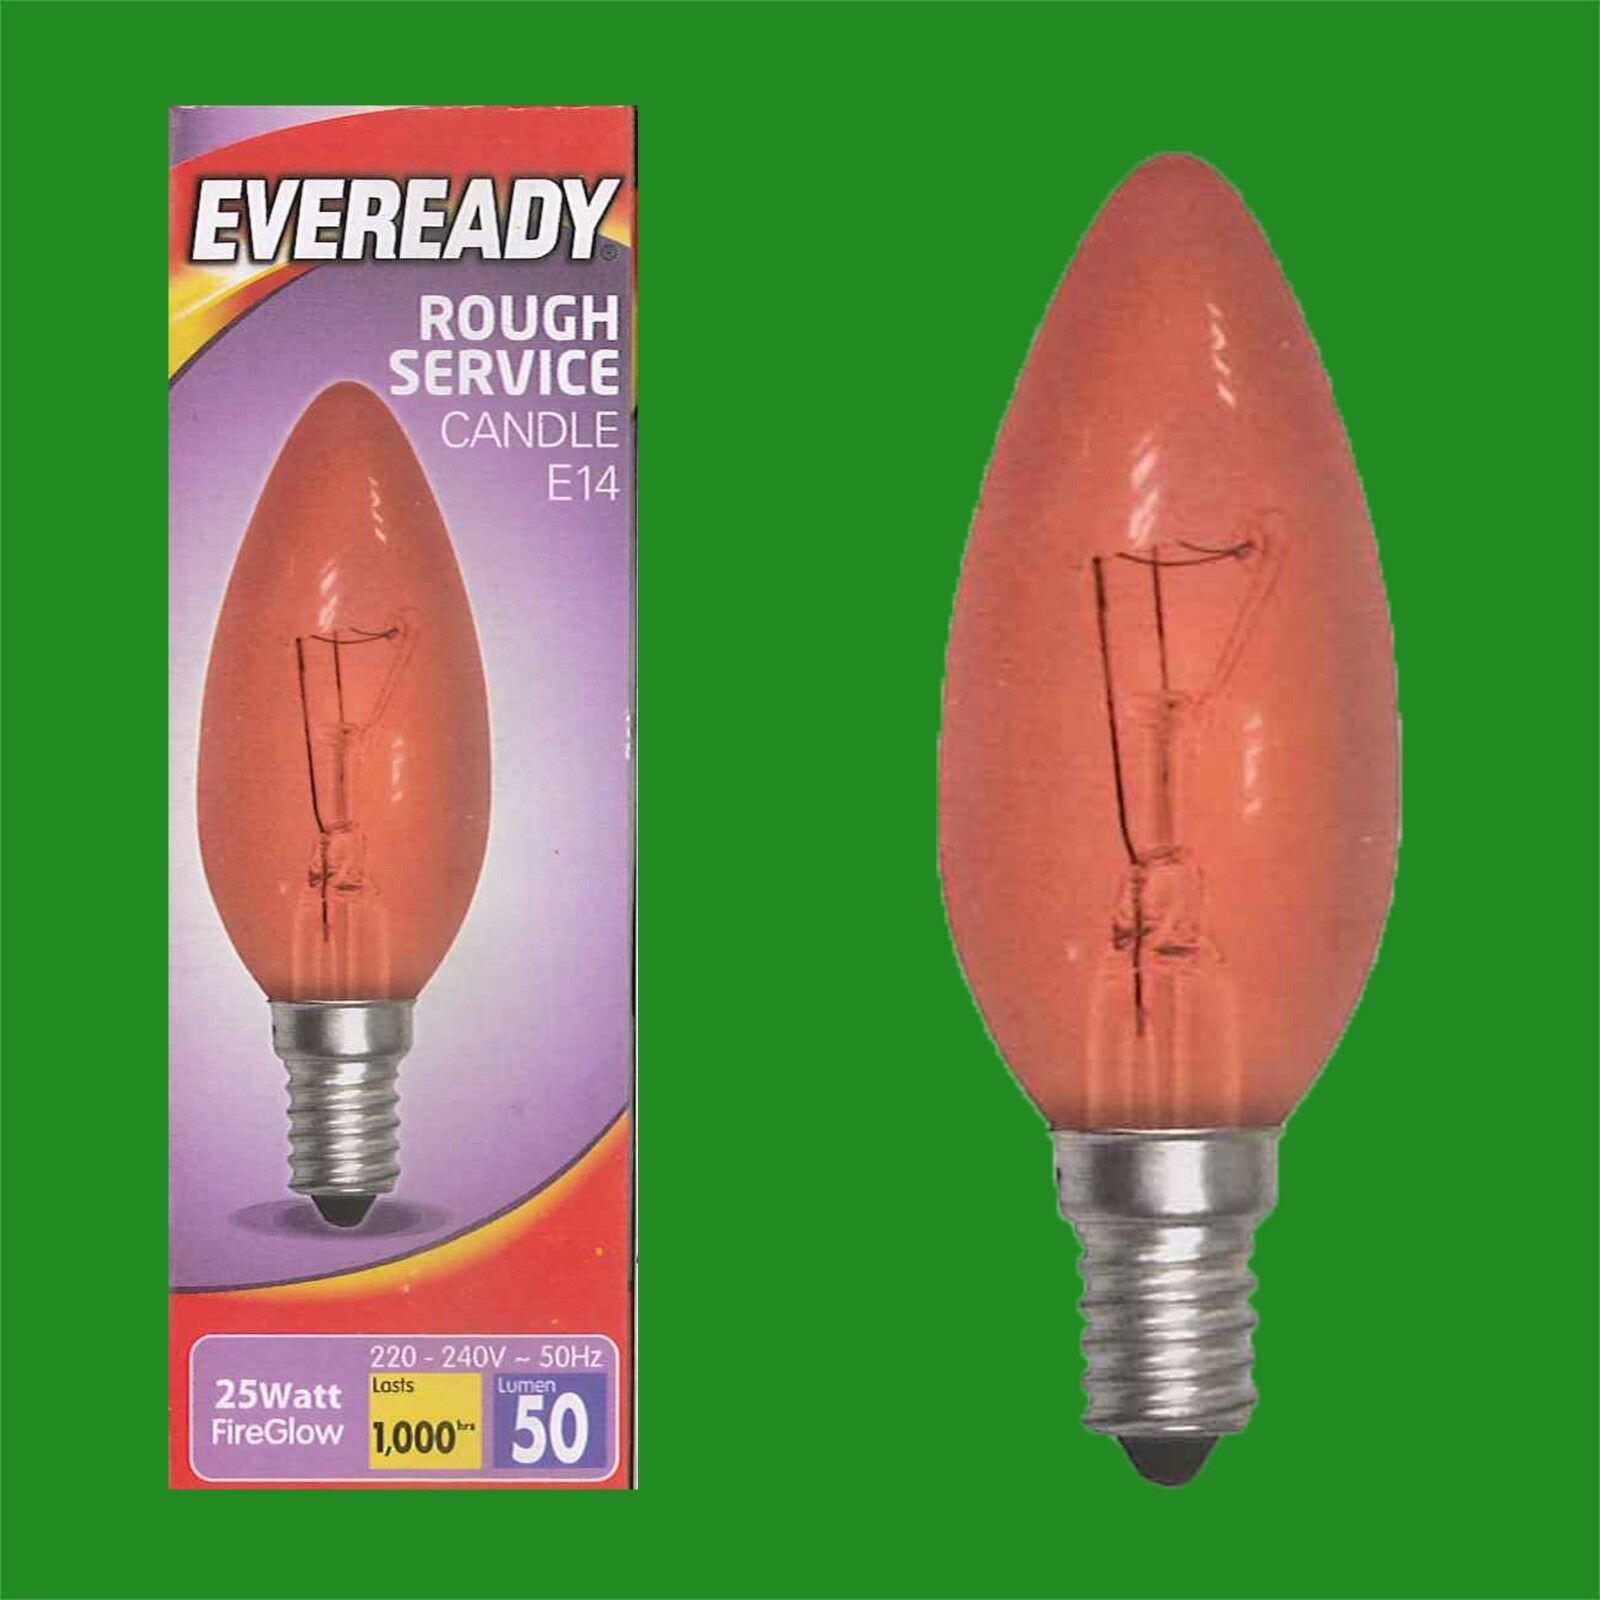 Brooders etc. Electric Fires 10x 25W Red Fireglow SES E14 Candle Light Bulb